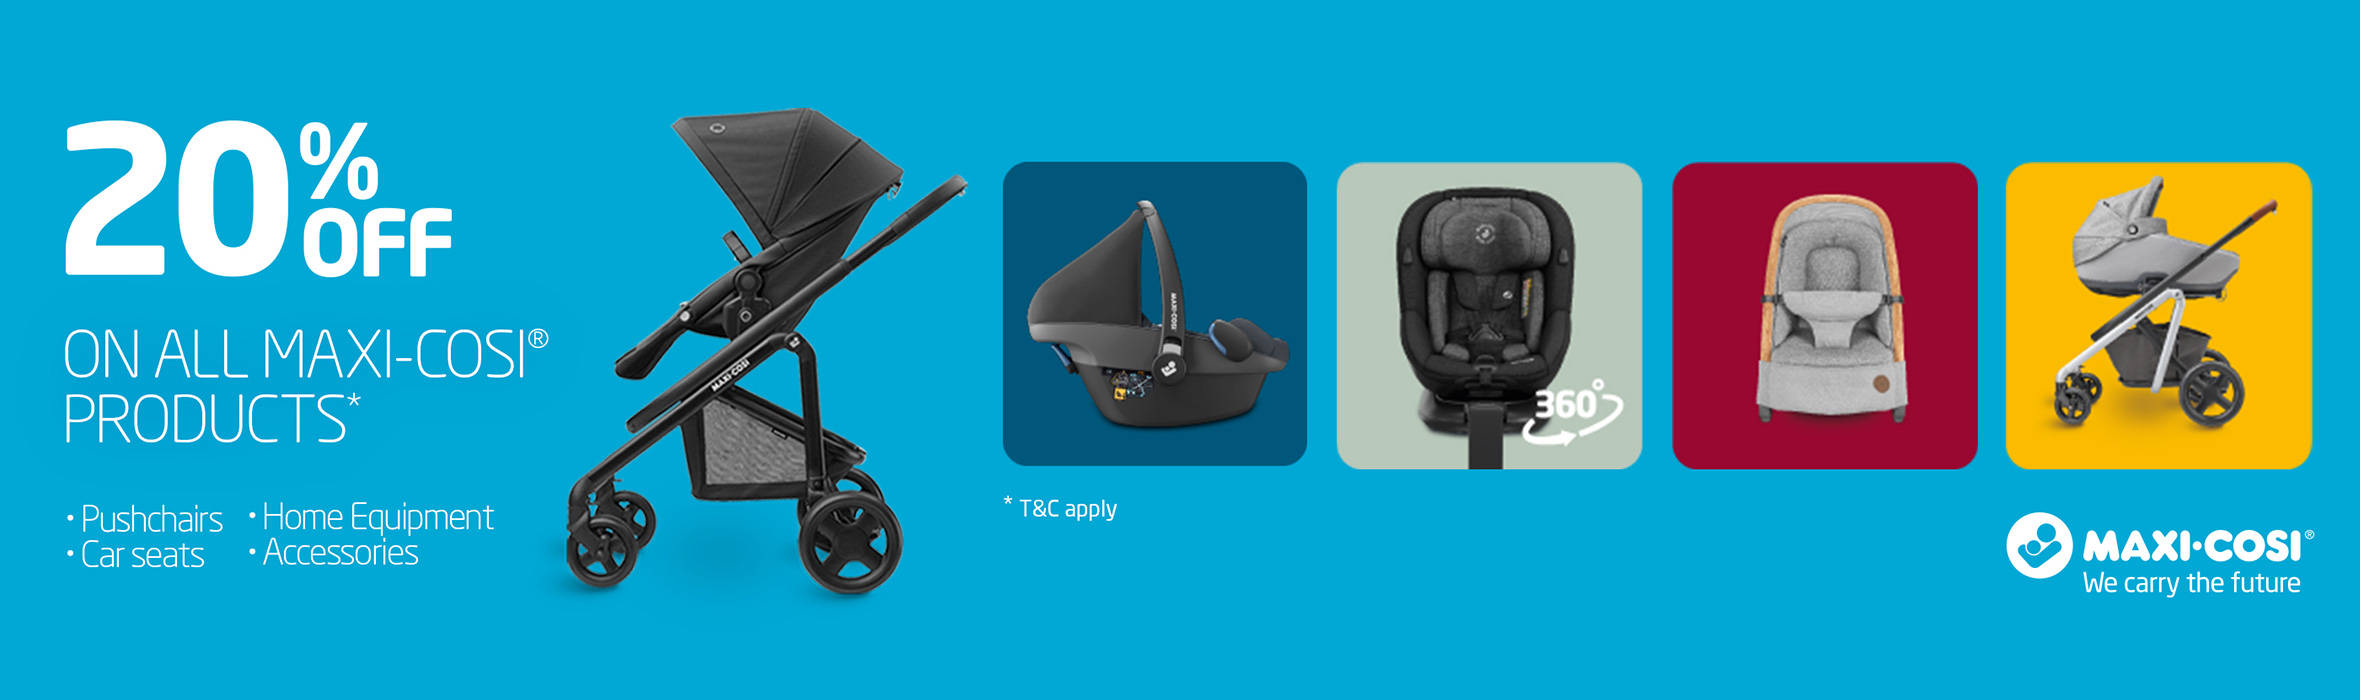 20% off all Maxi Cosi products!